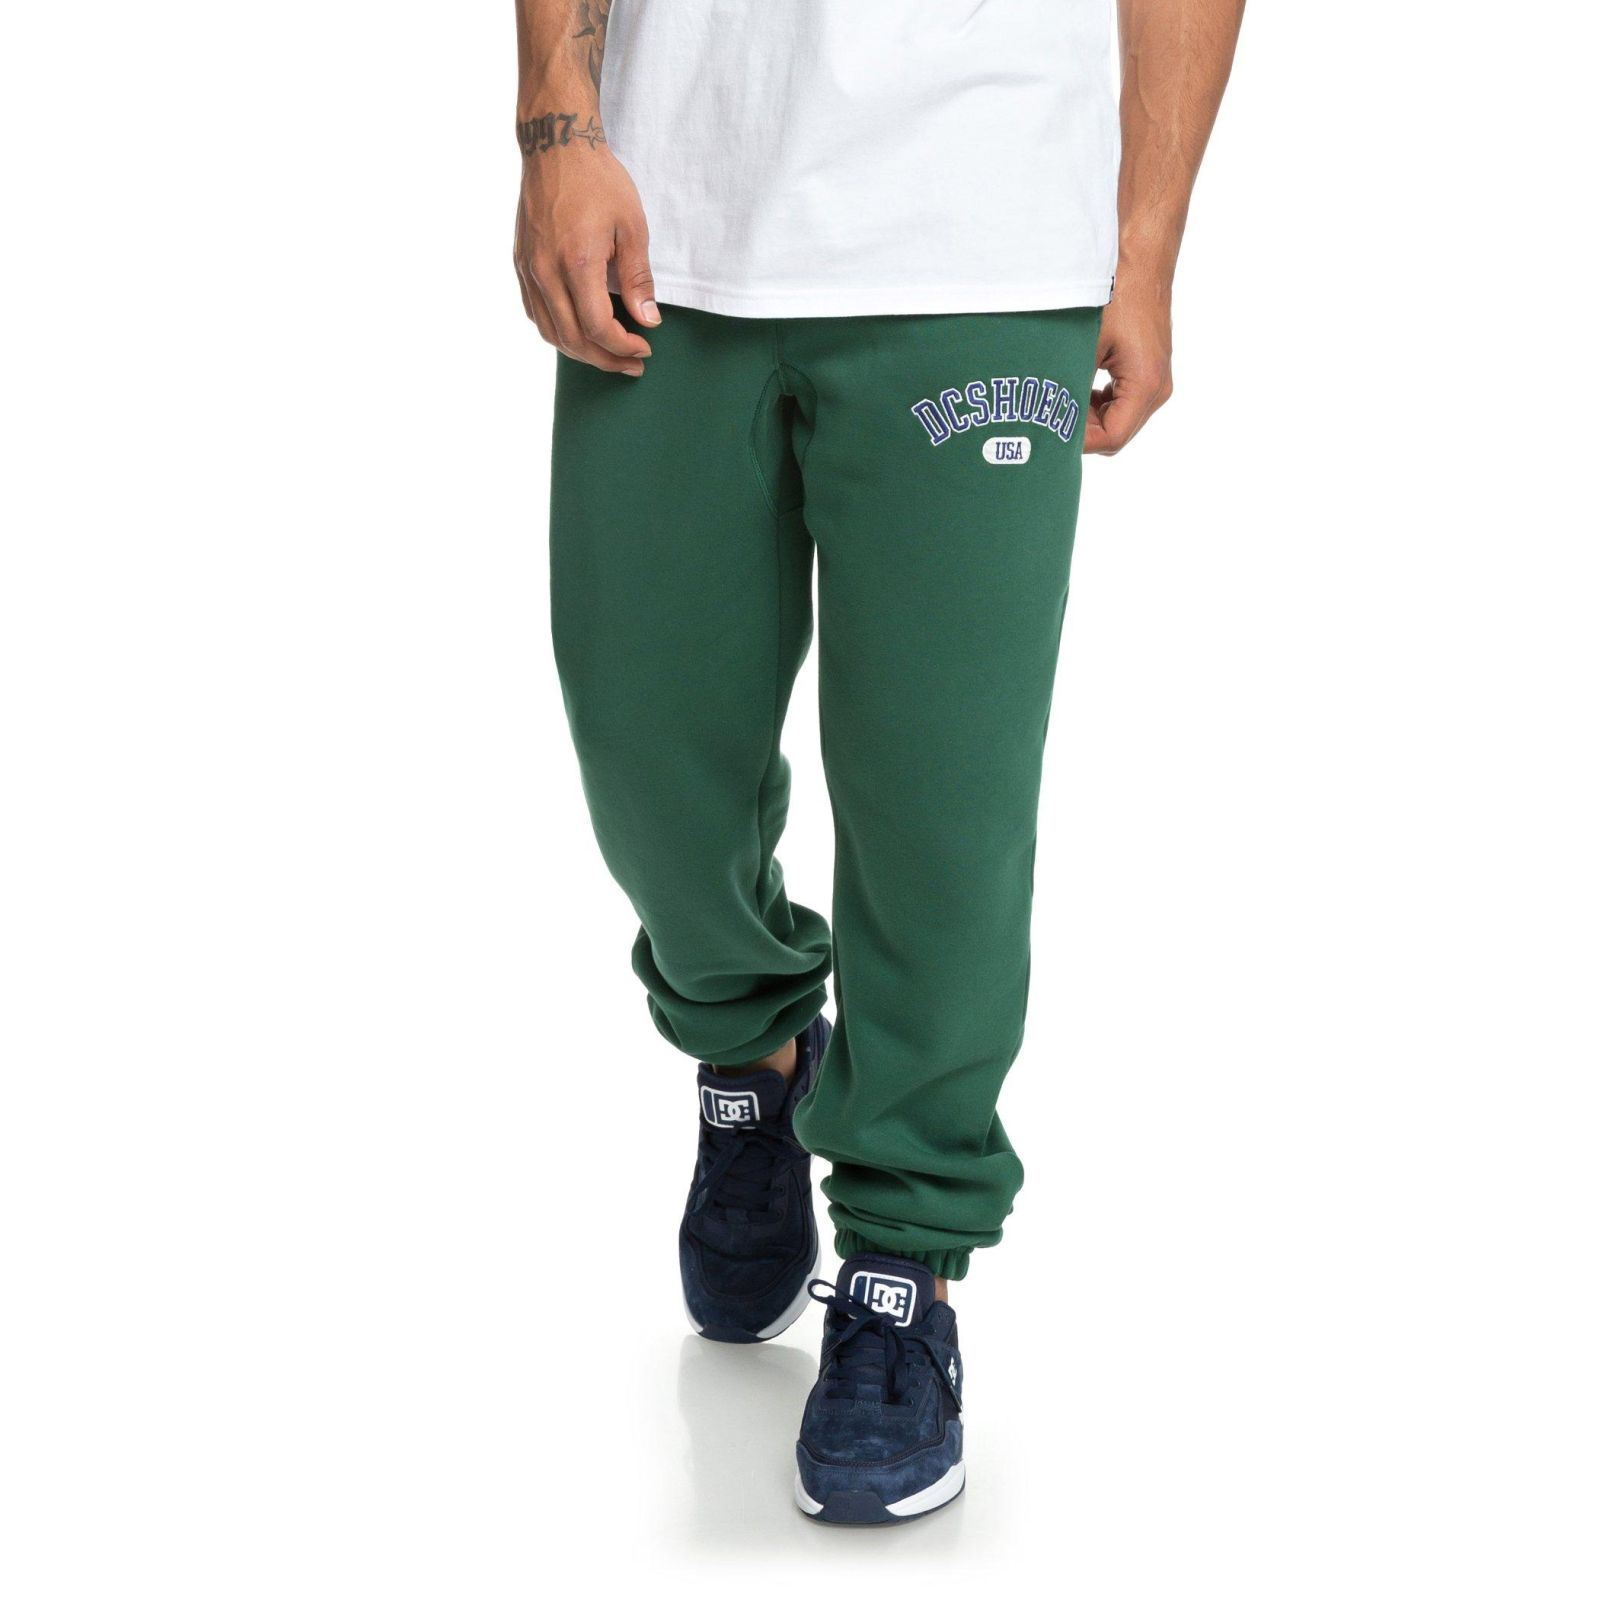 Joggingbroek Groen.Dc Shoes Joggingbroek Groen Brandalley